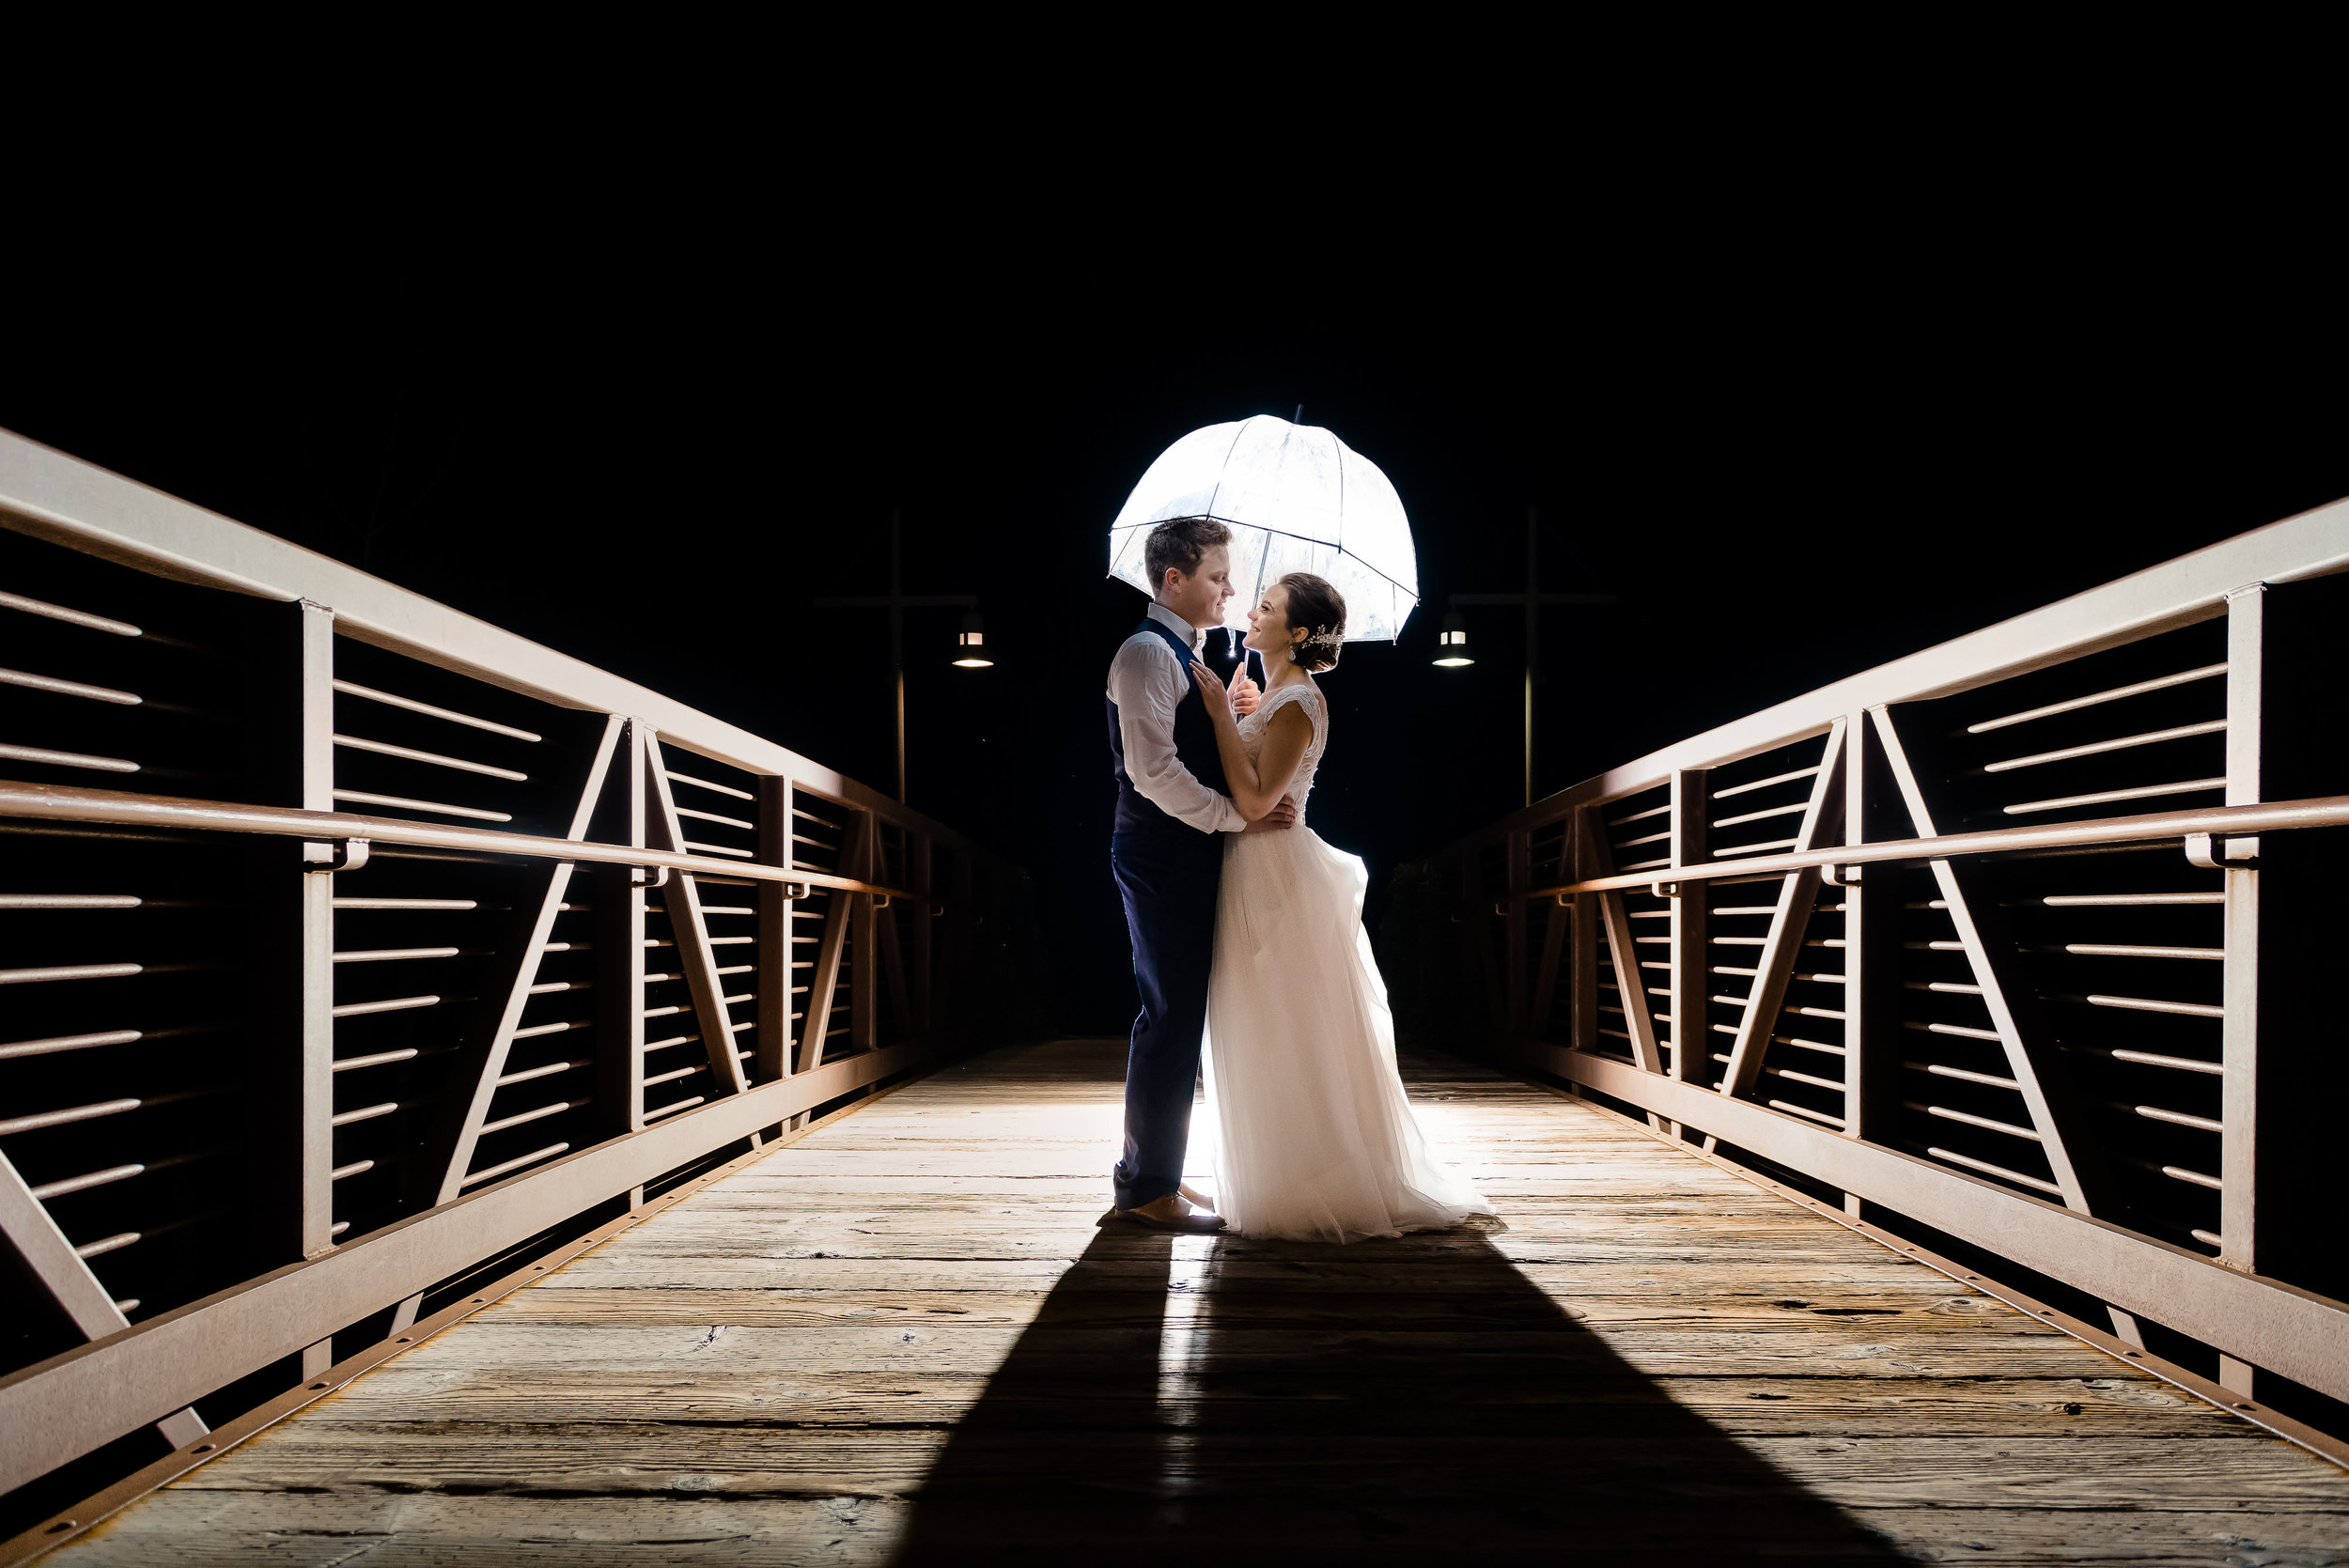 Elm Creek Chalet Wedding Photos - Laura Robinson Photography - Epic Night Shot